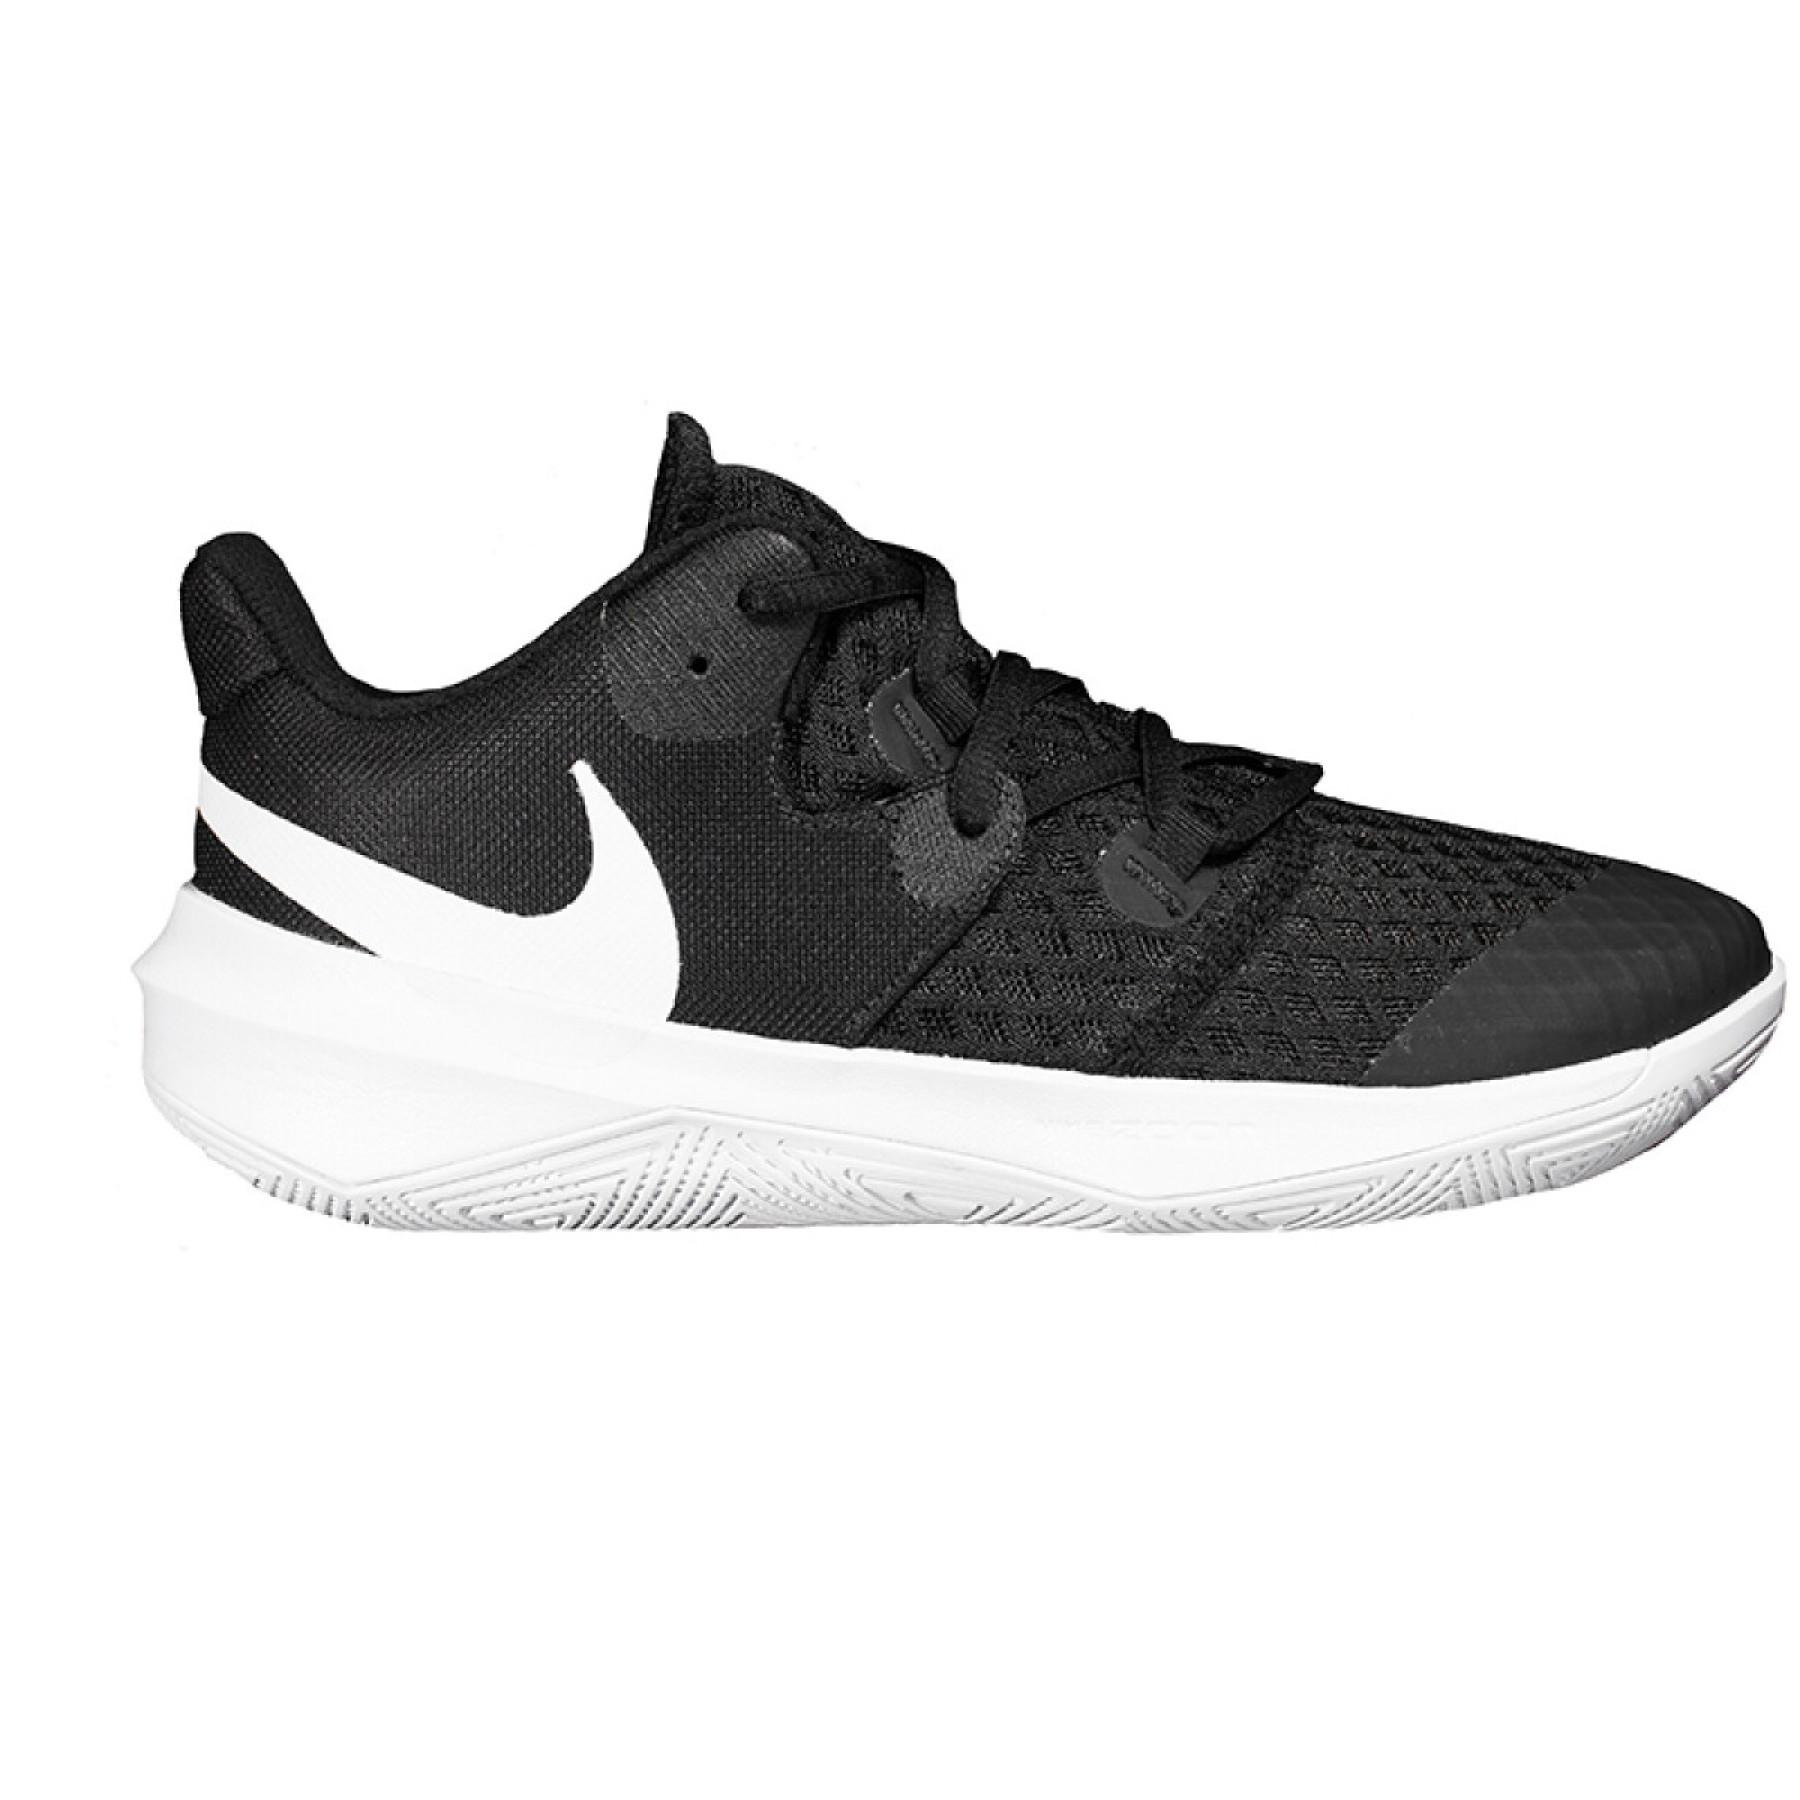 Chaussures Nike Hyperspeed Court